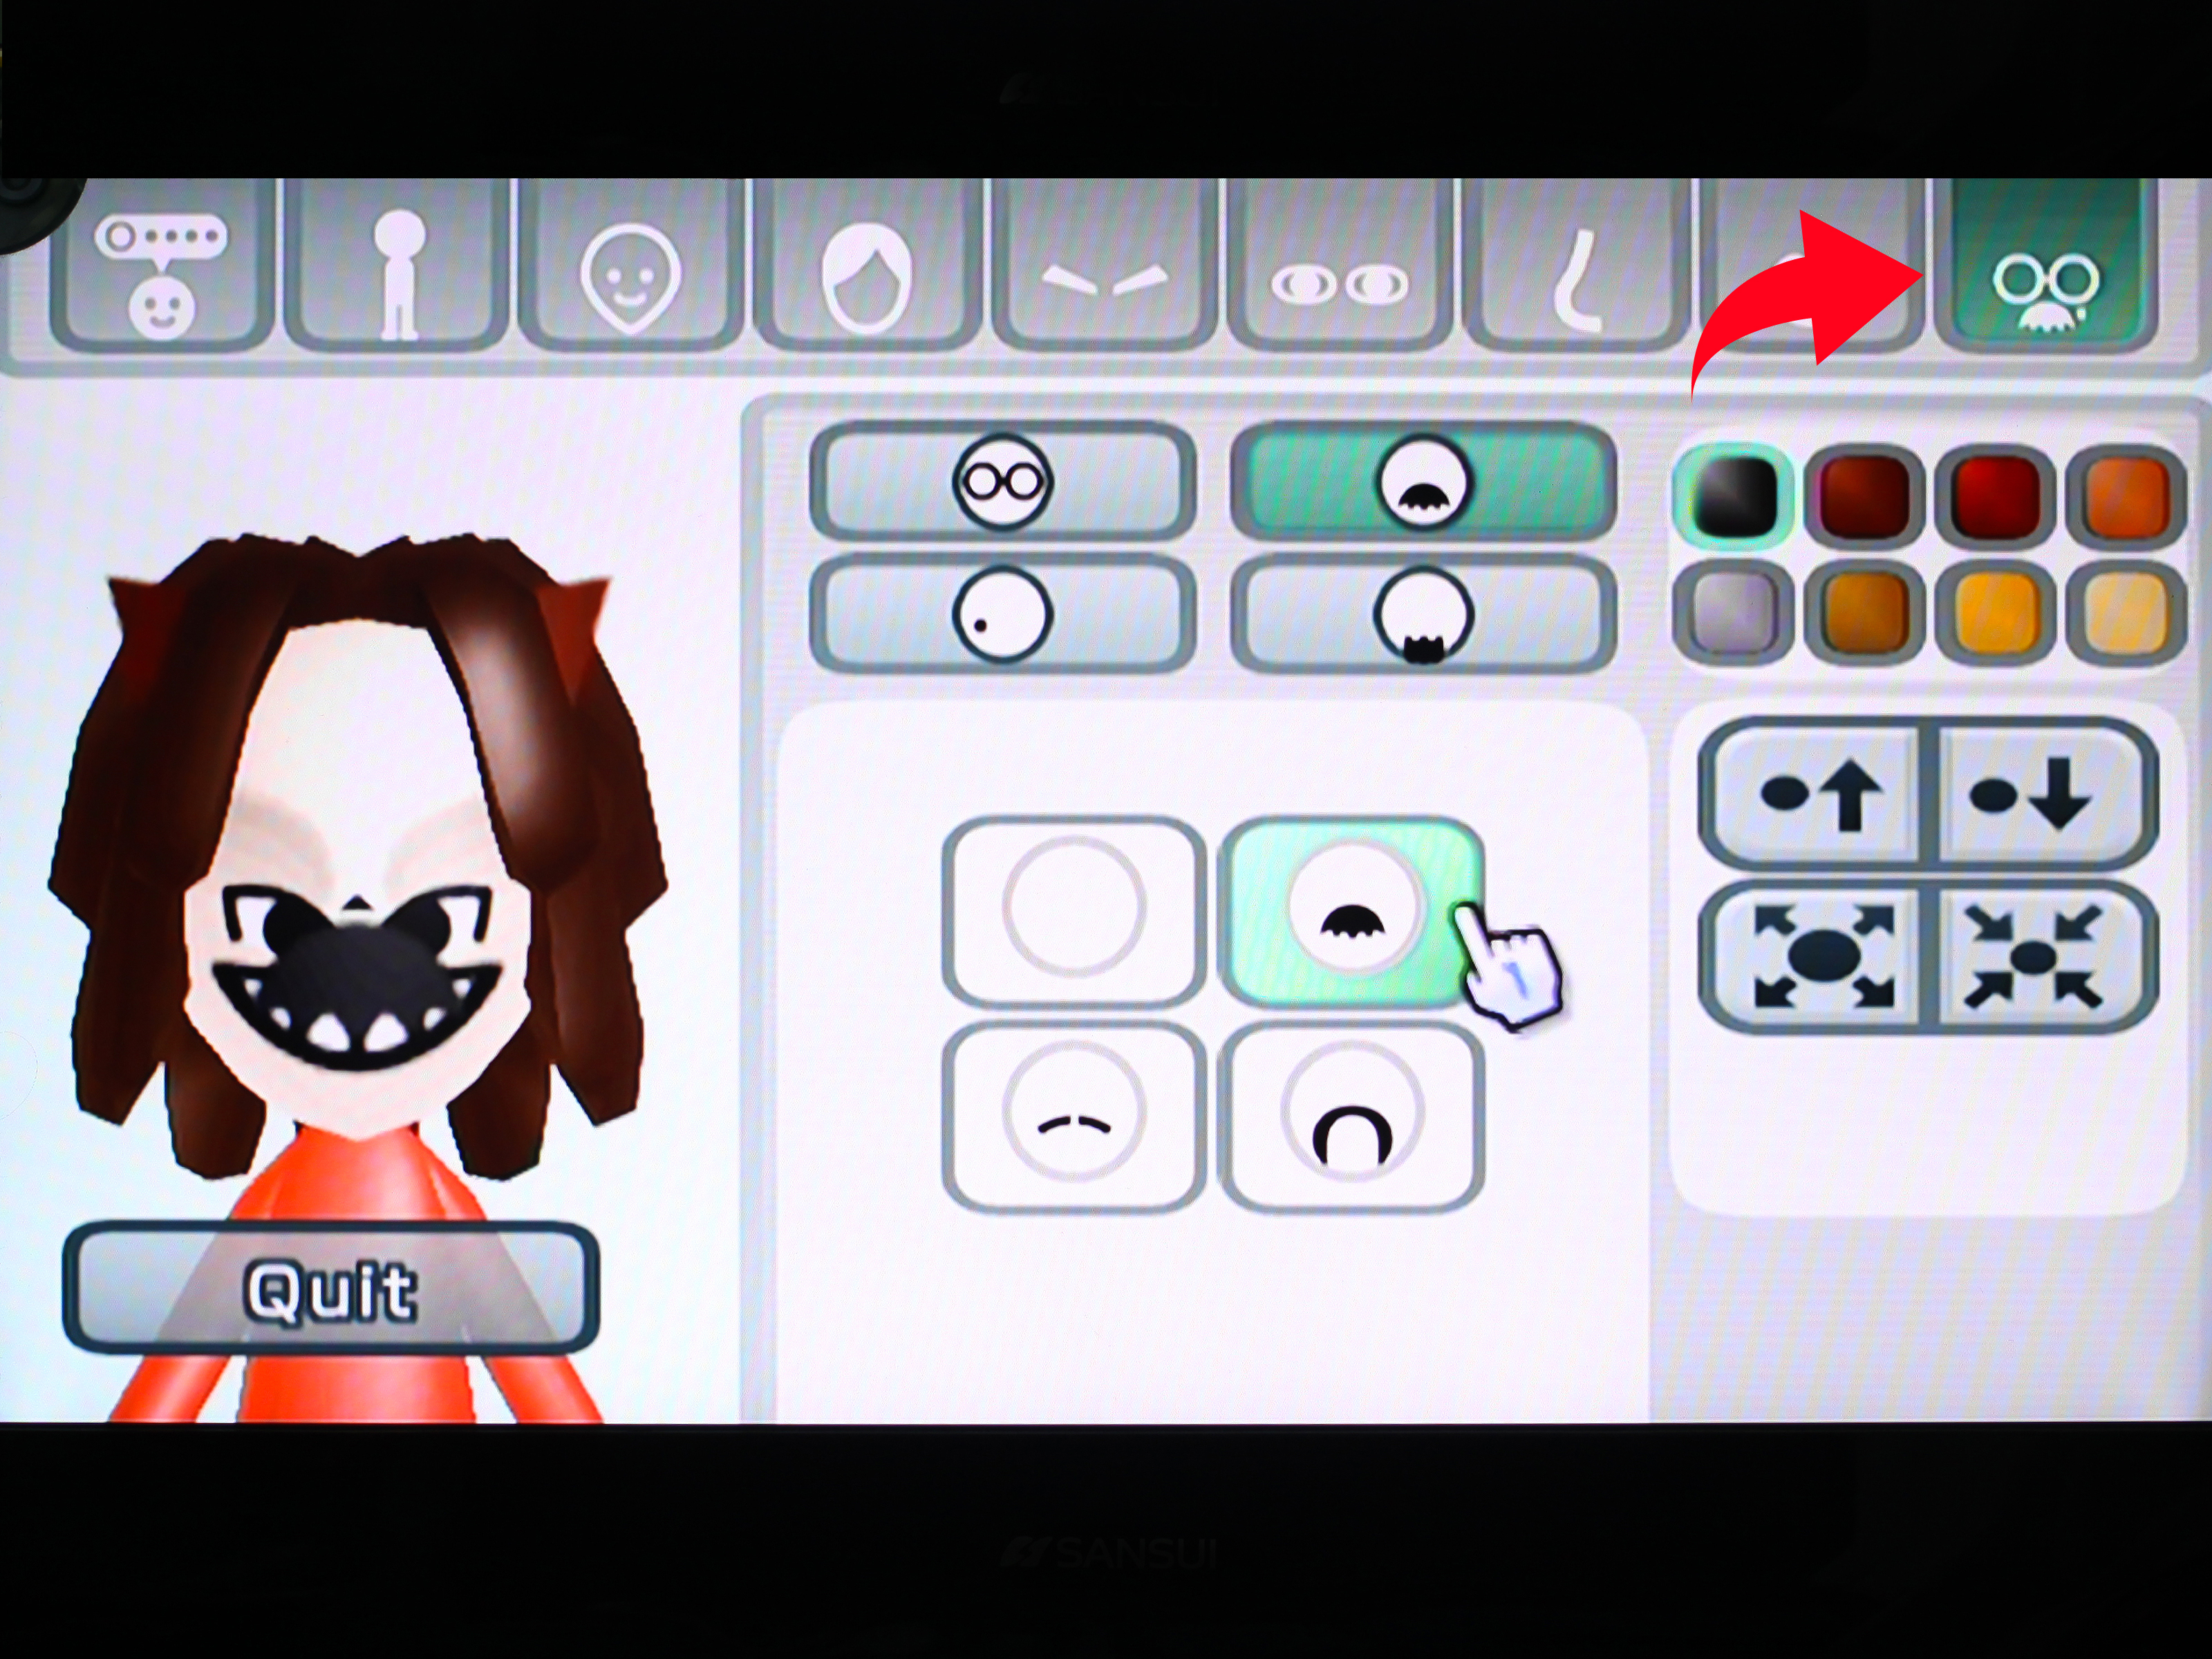 How To Make A Mii Look Evil 6 Steps With Pictures WikiHow